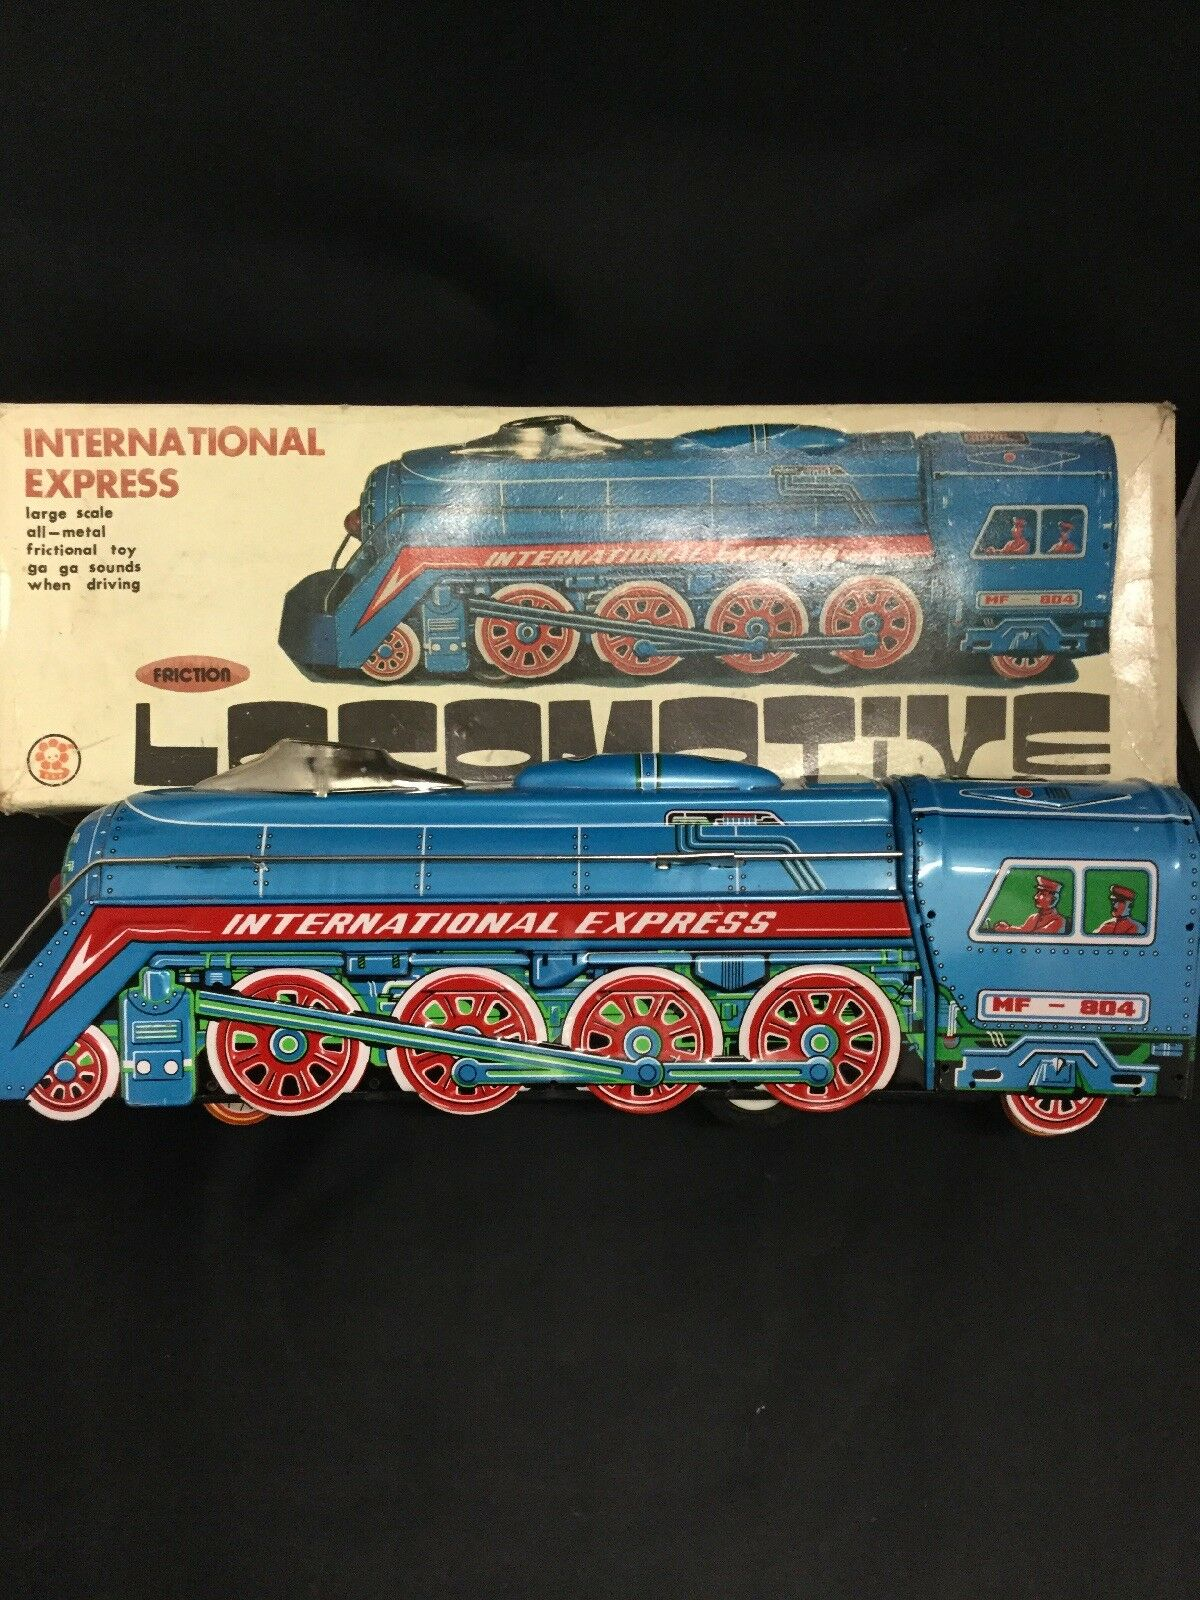 International Express Locomotive With Friction MF-804